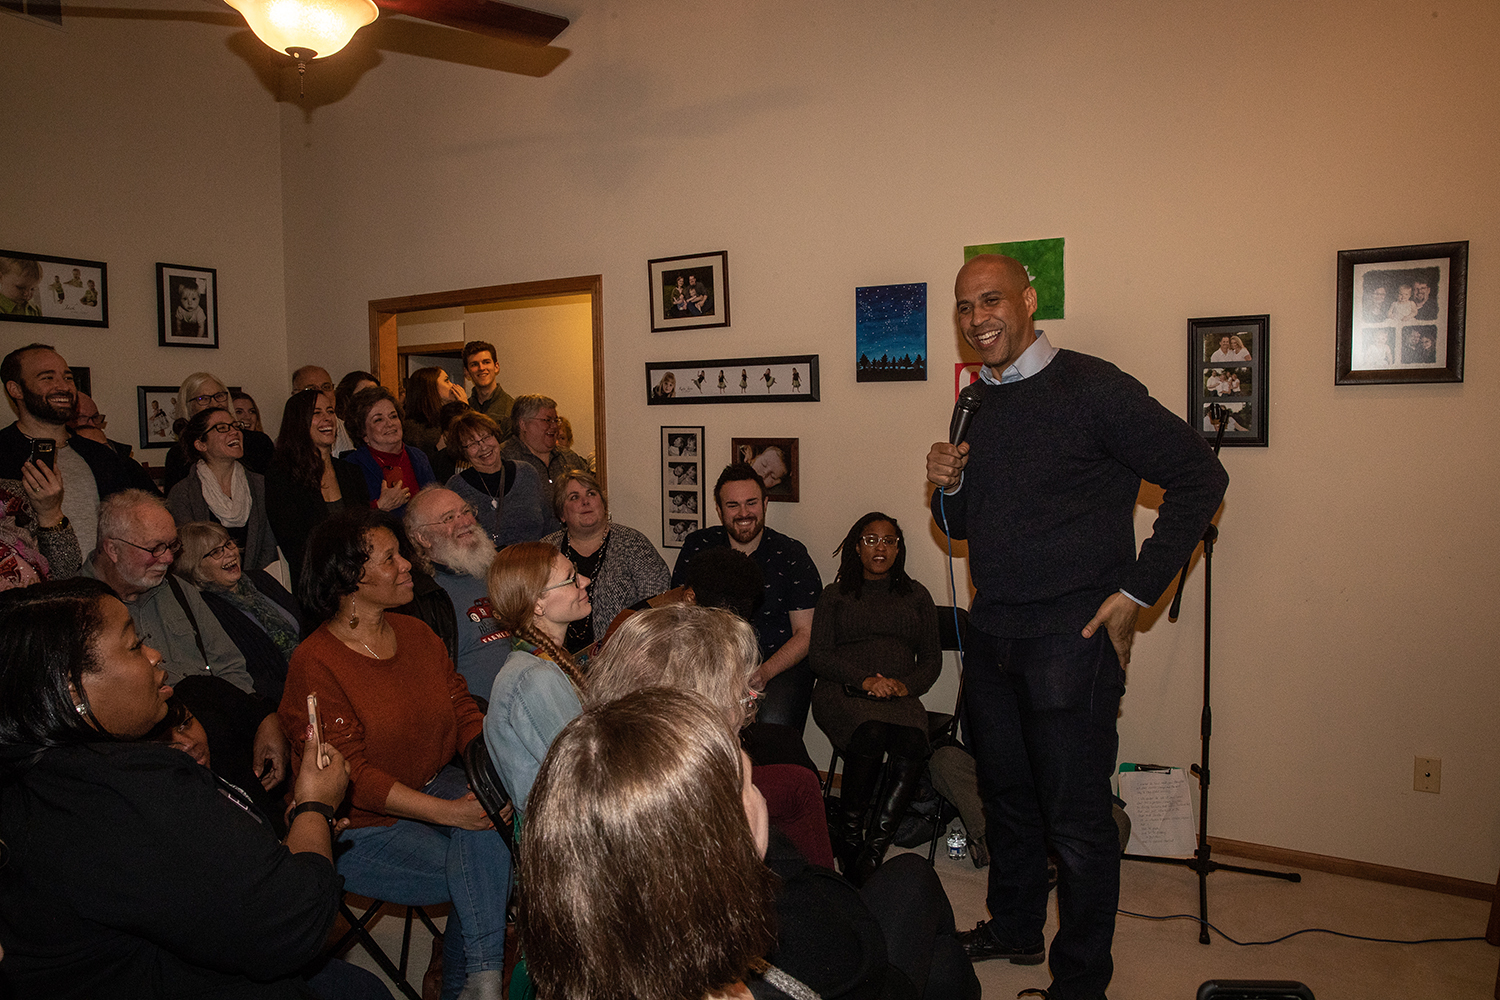 Sen. Cory Booker, D-N.J. during a community forum at in on Friday, February 8, 2019. Sen. Booker announced his campaign to run for president on February 1, 2019.